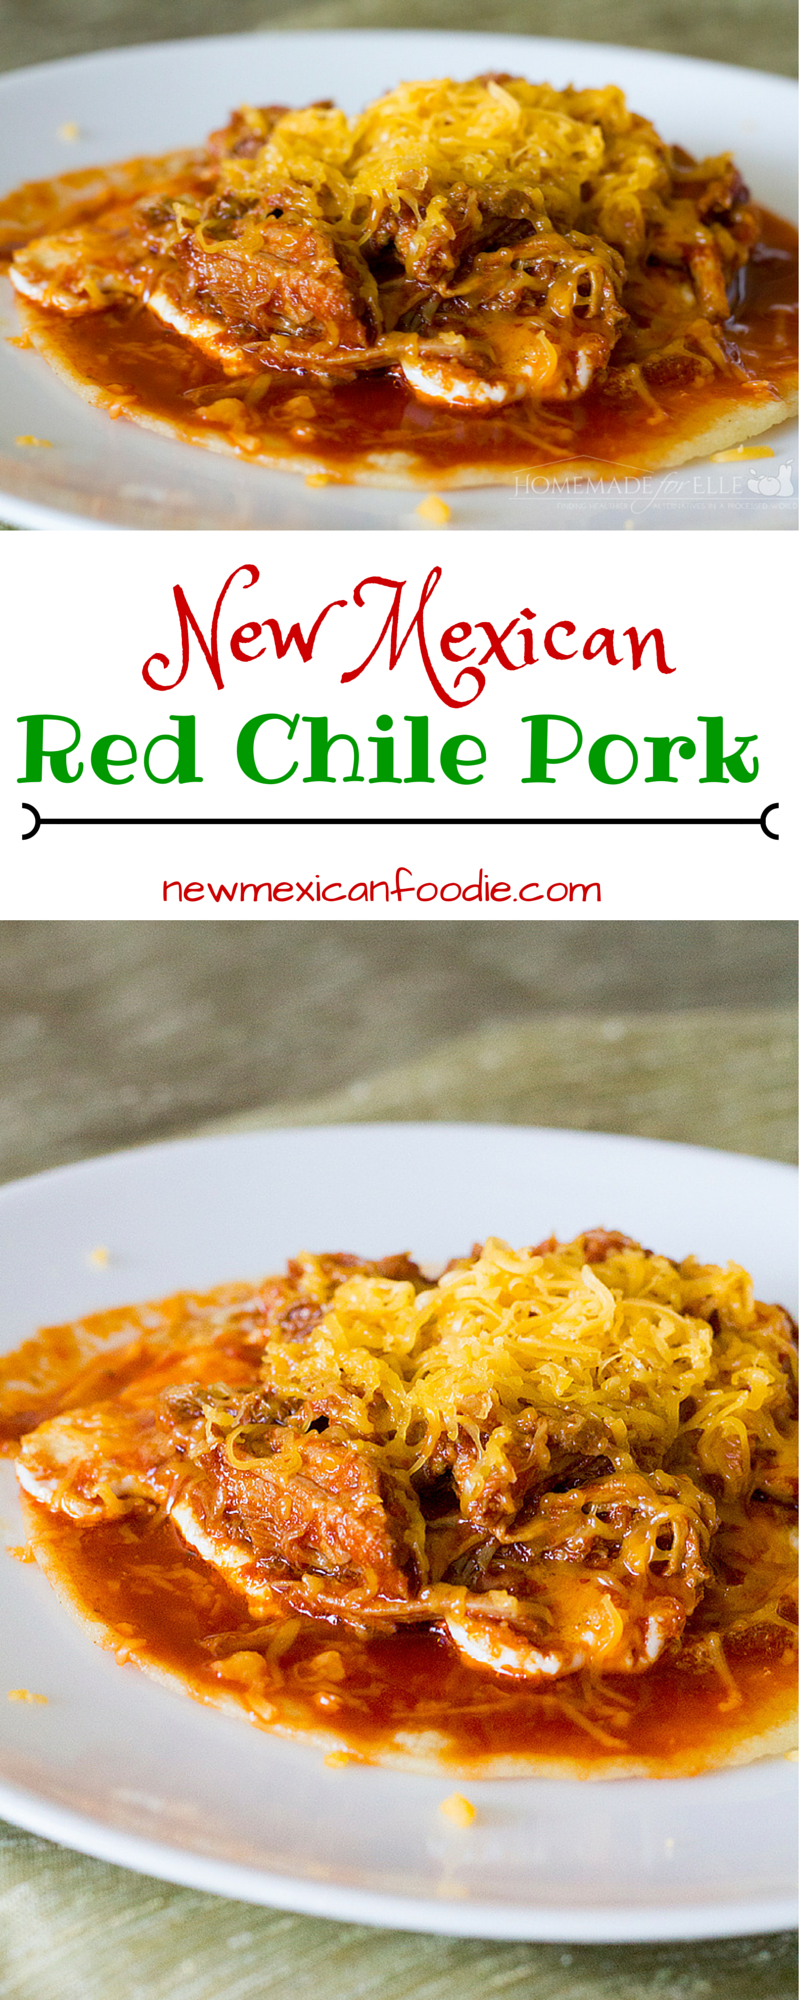 New Mexico Red Chile Pork With Huevos New Mexican Foodie